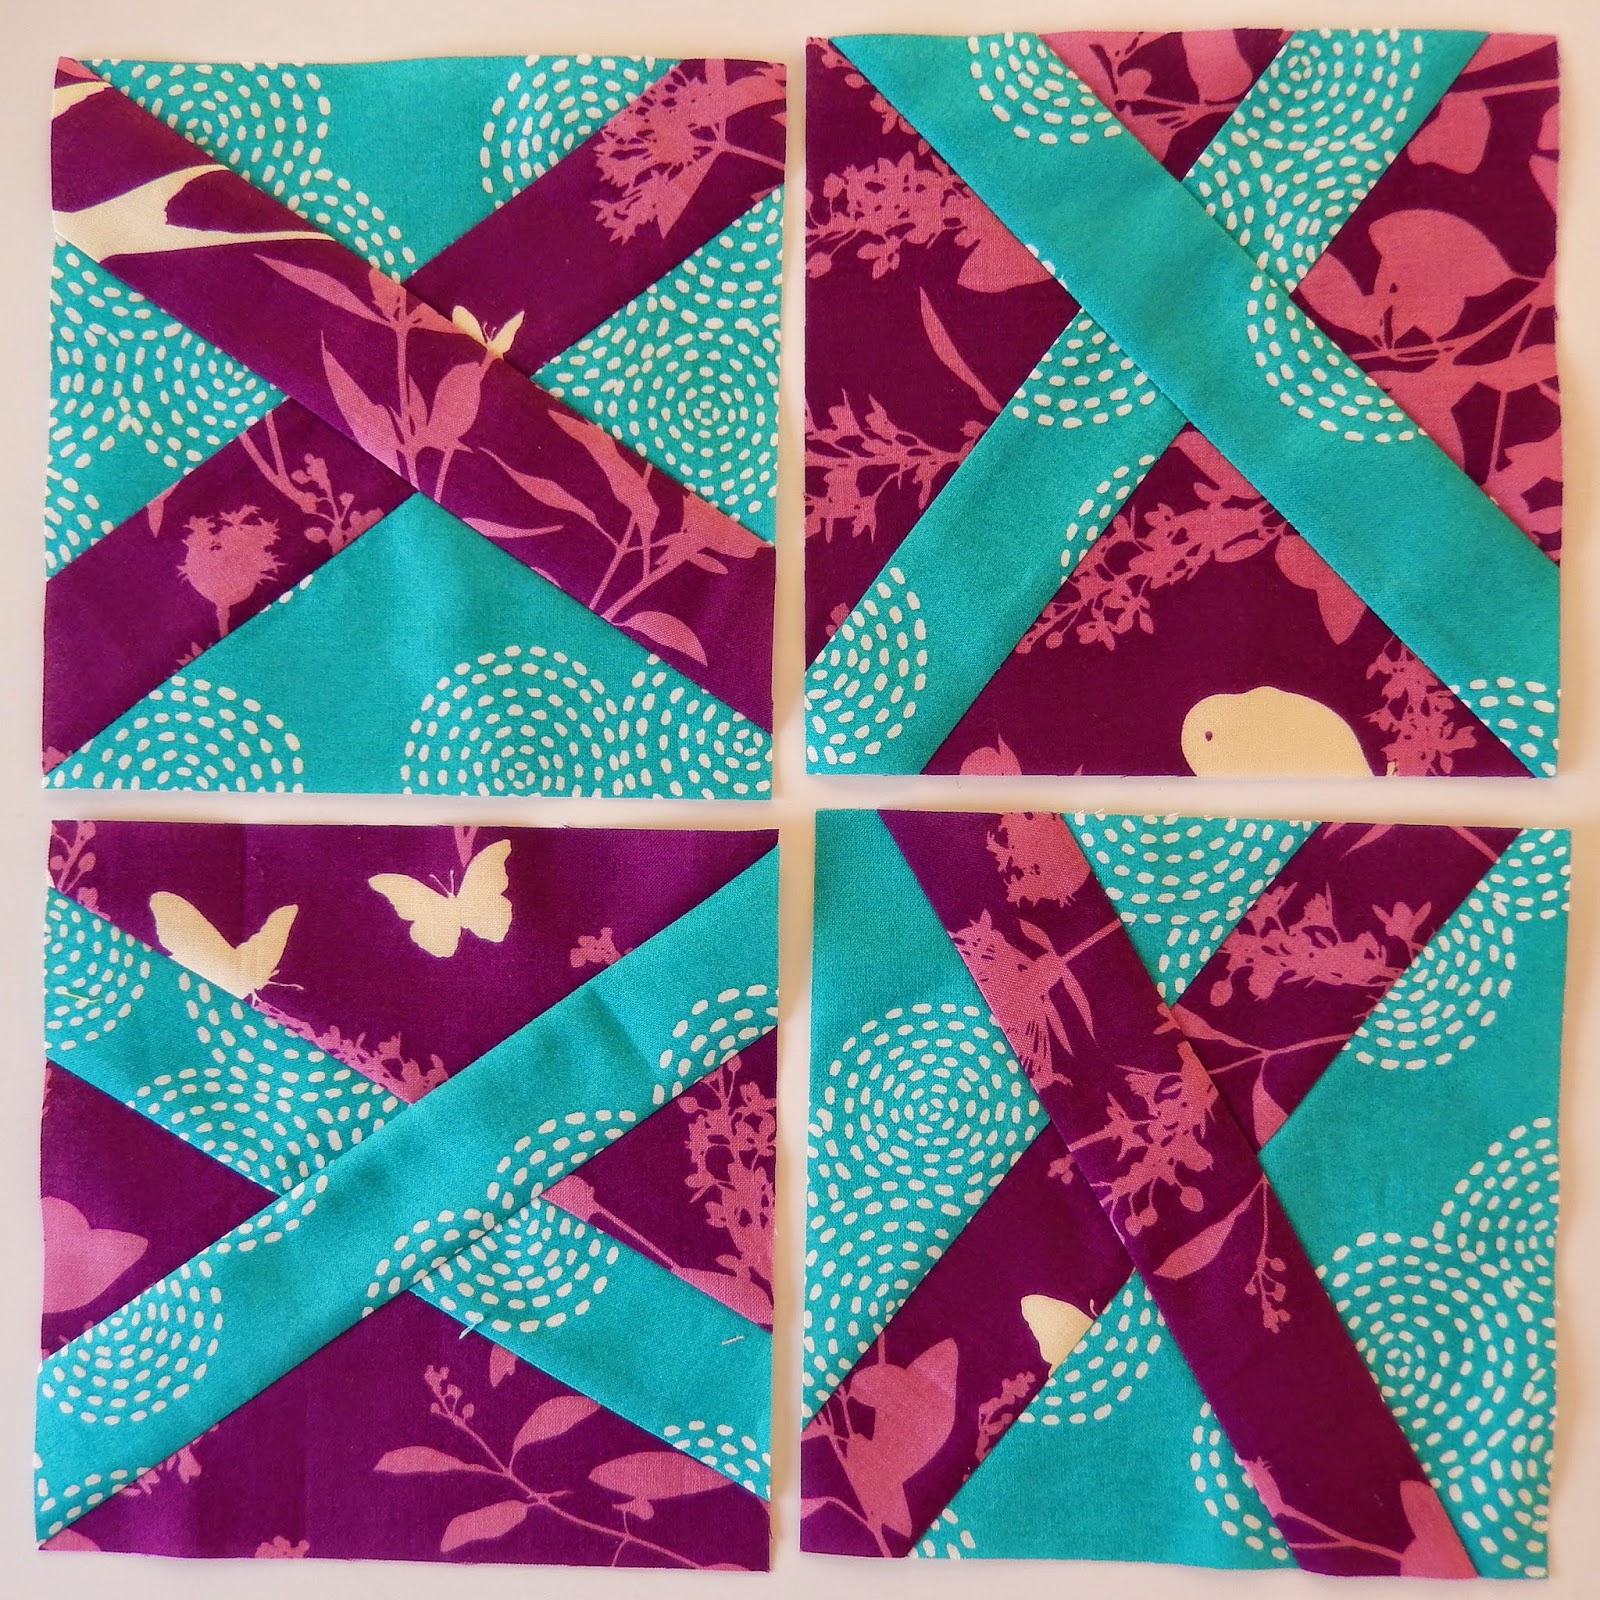 Improv Wonky X for Hope Circle of do. Good Stitches December @ Quilting Mod